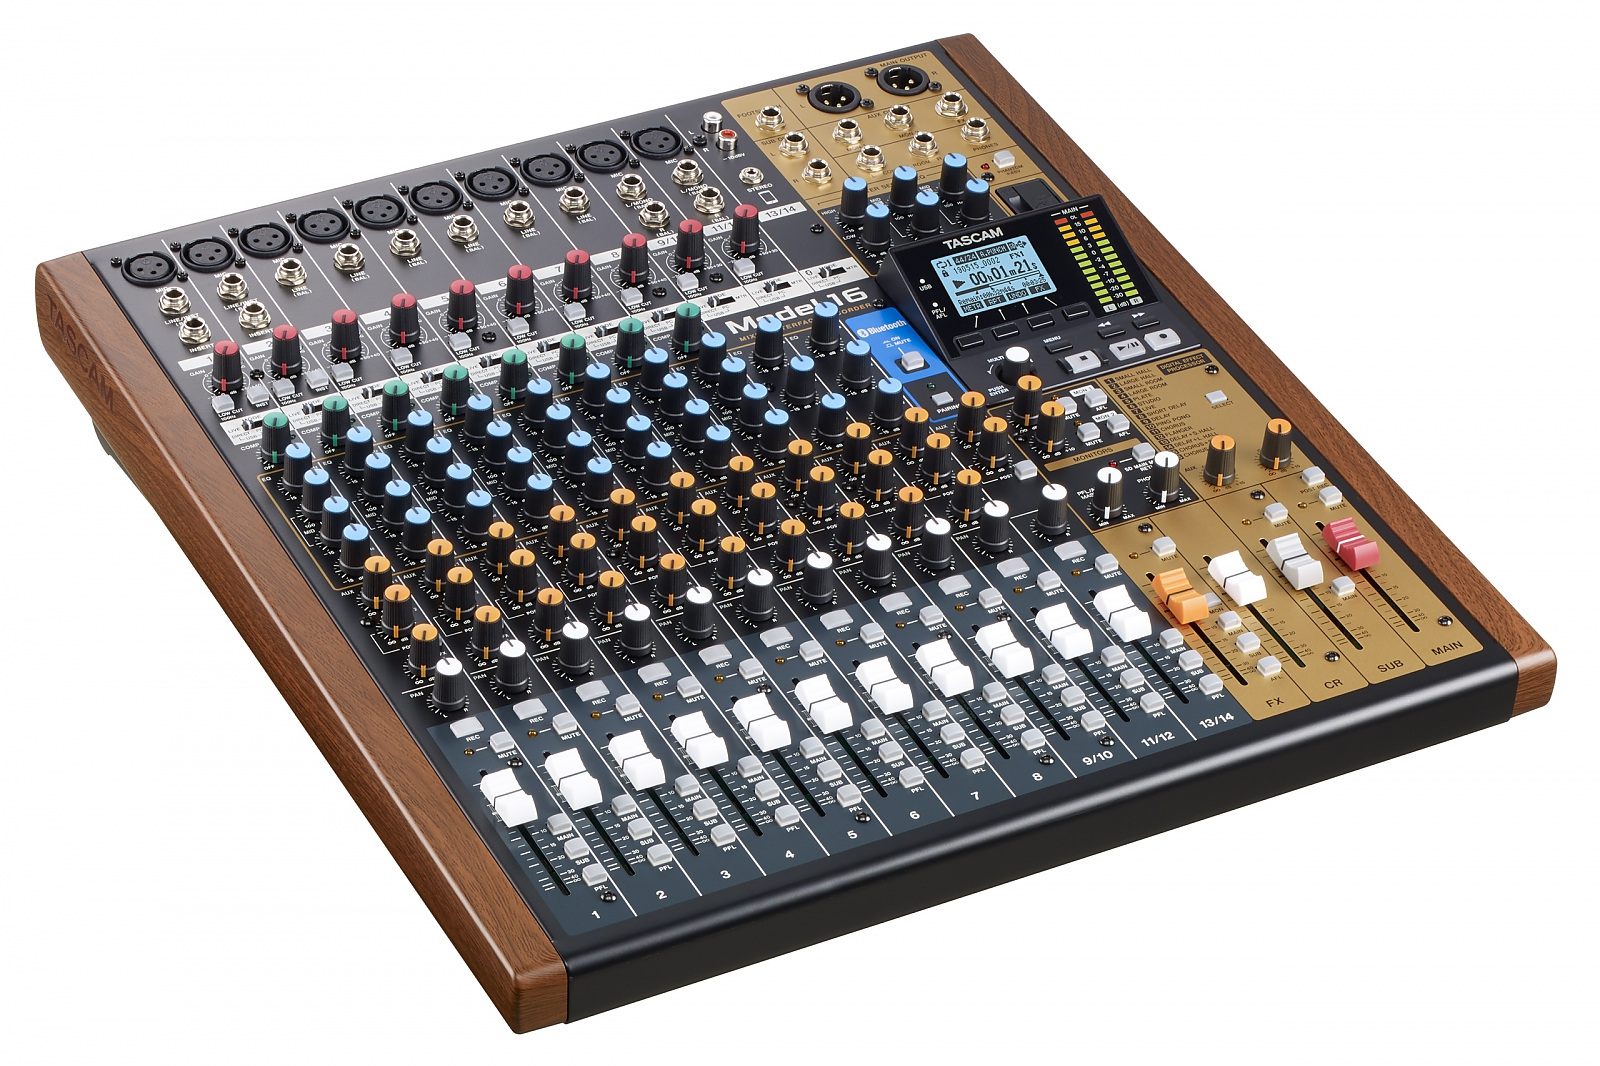 Tascam 14-Ch Analogue Mixer with 16-Track Digital Recorder